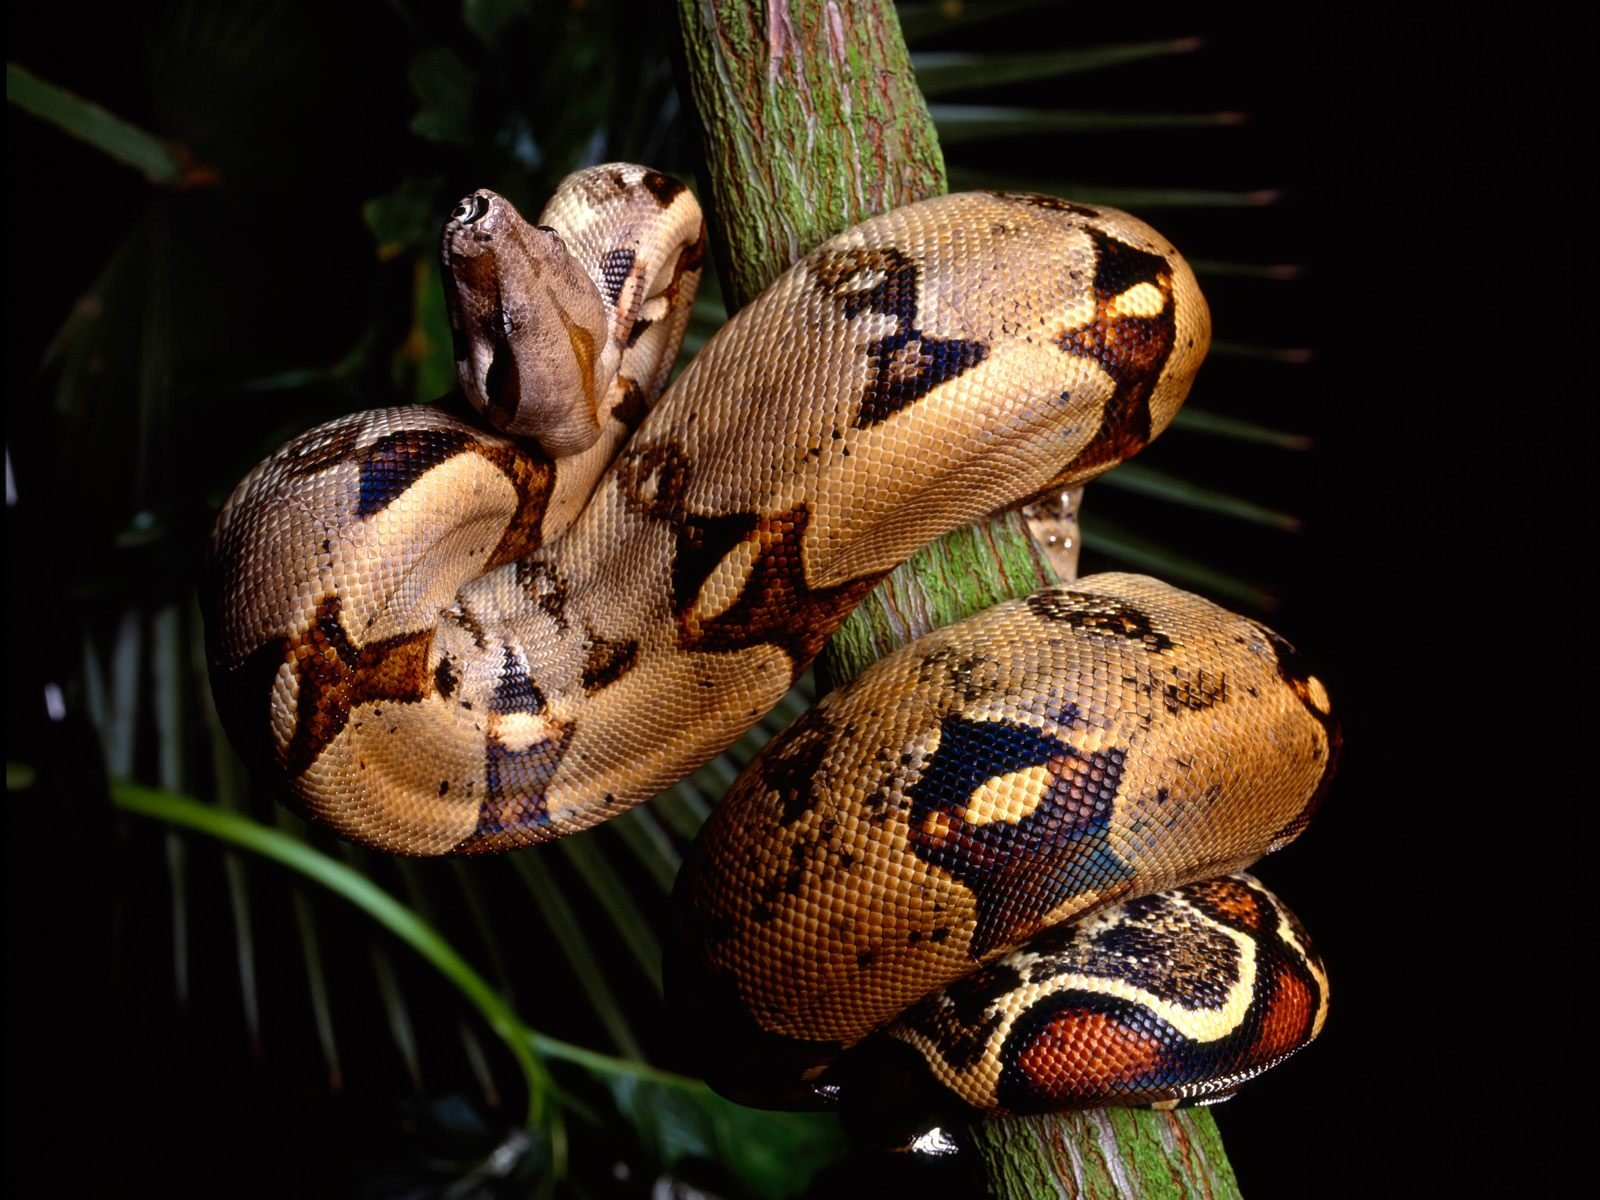 Belize-Boa-Constrictor